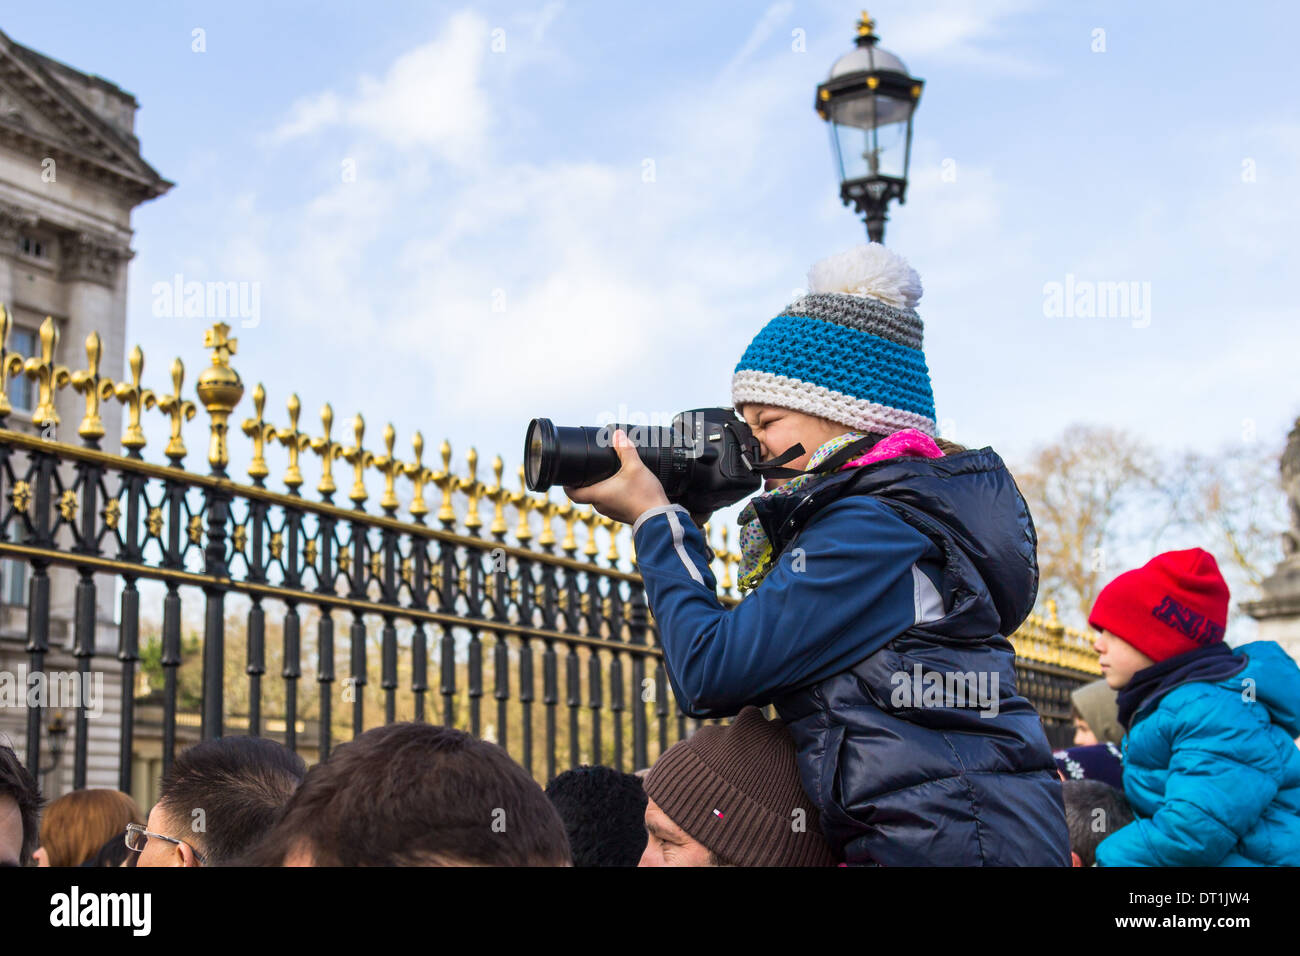 LONDON, UK, 2ND FEB 2014: A young photographer taking pictures of Buckingham Palace on top of a mans shoulders - Stock Image